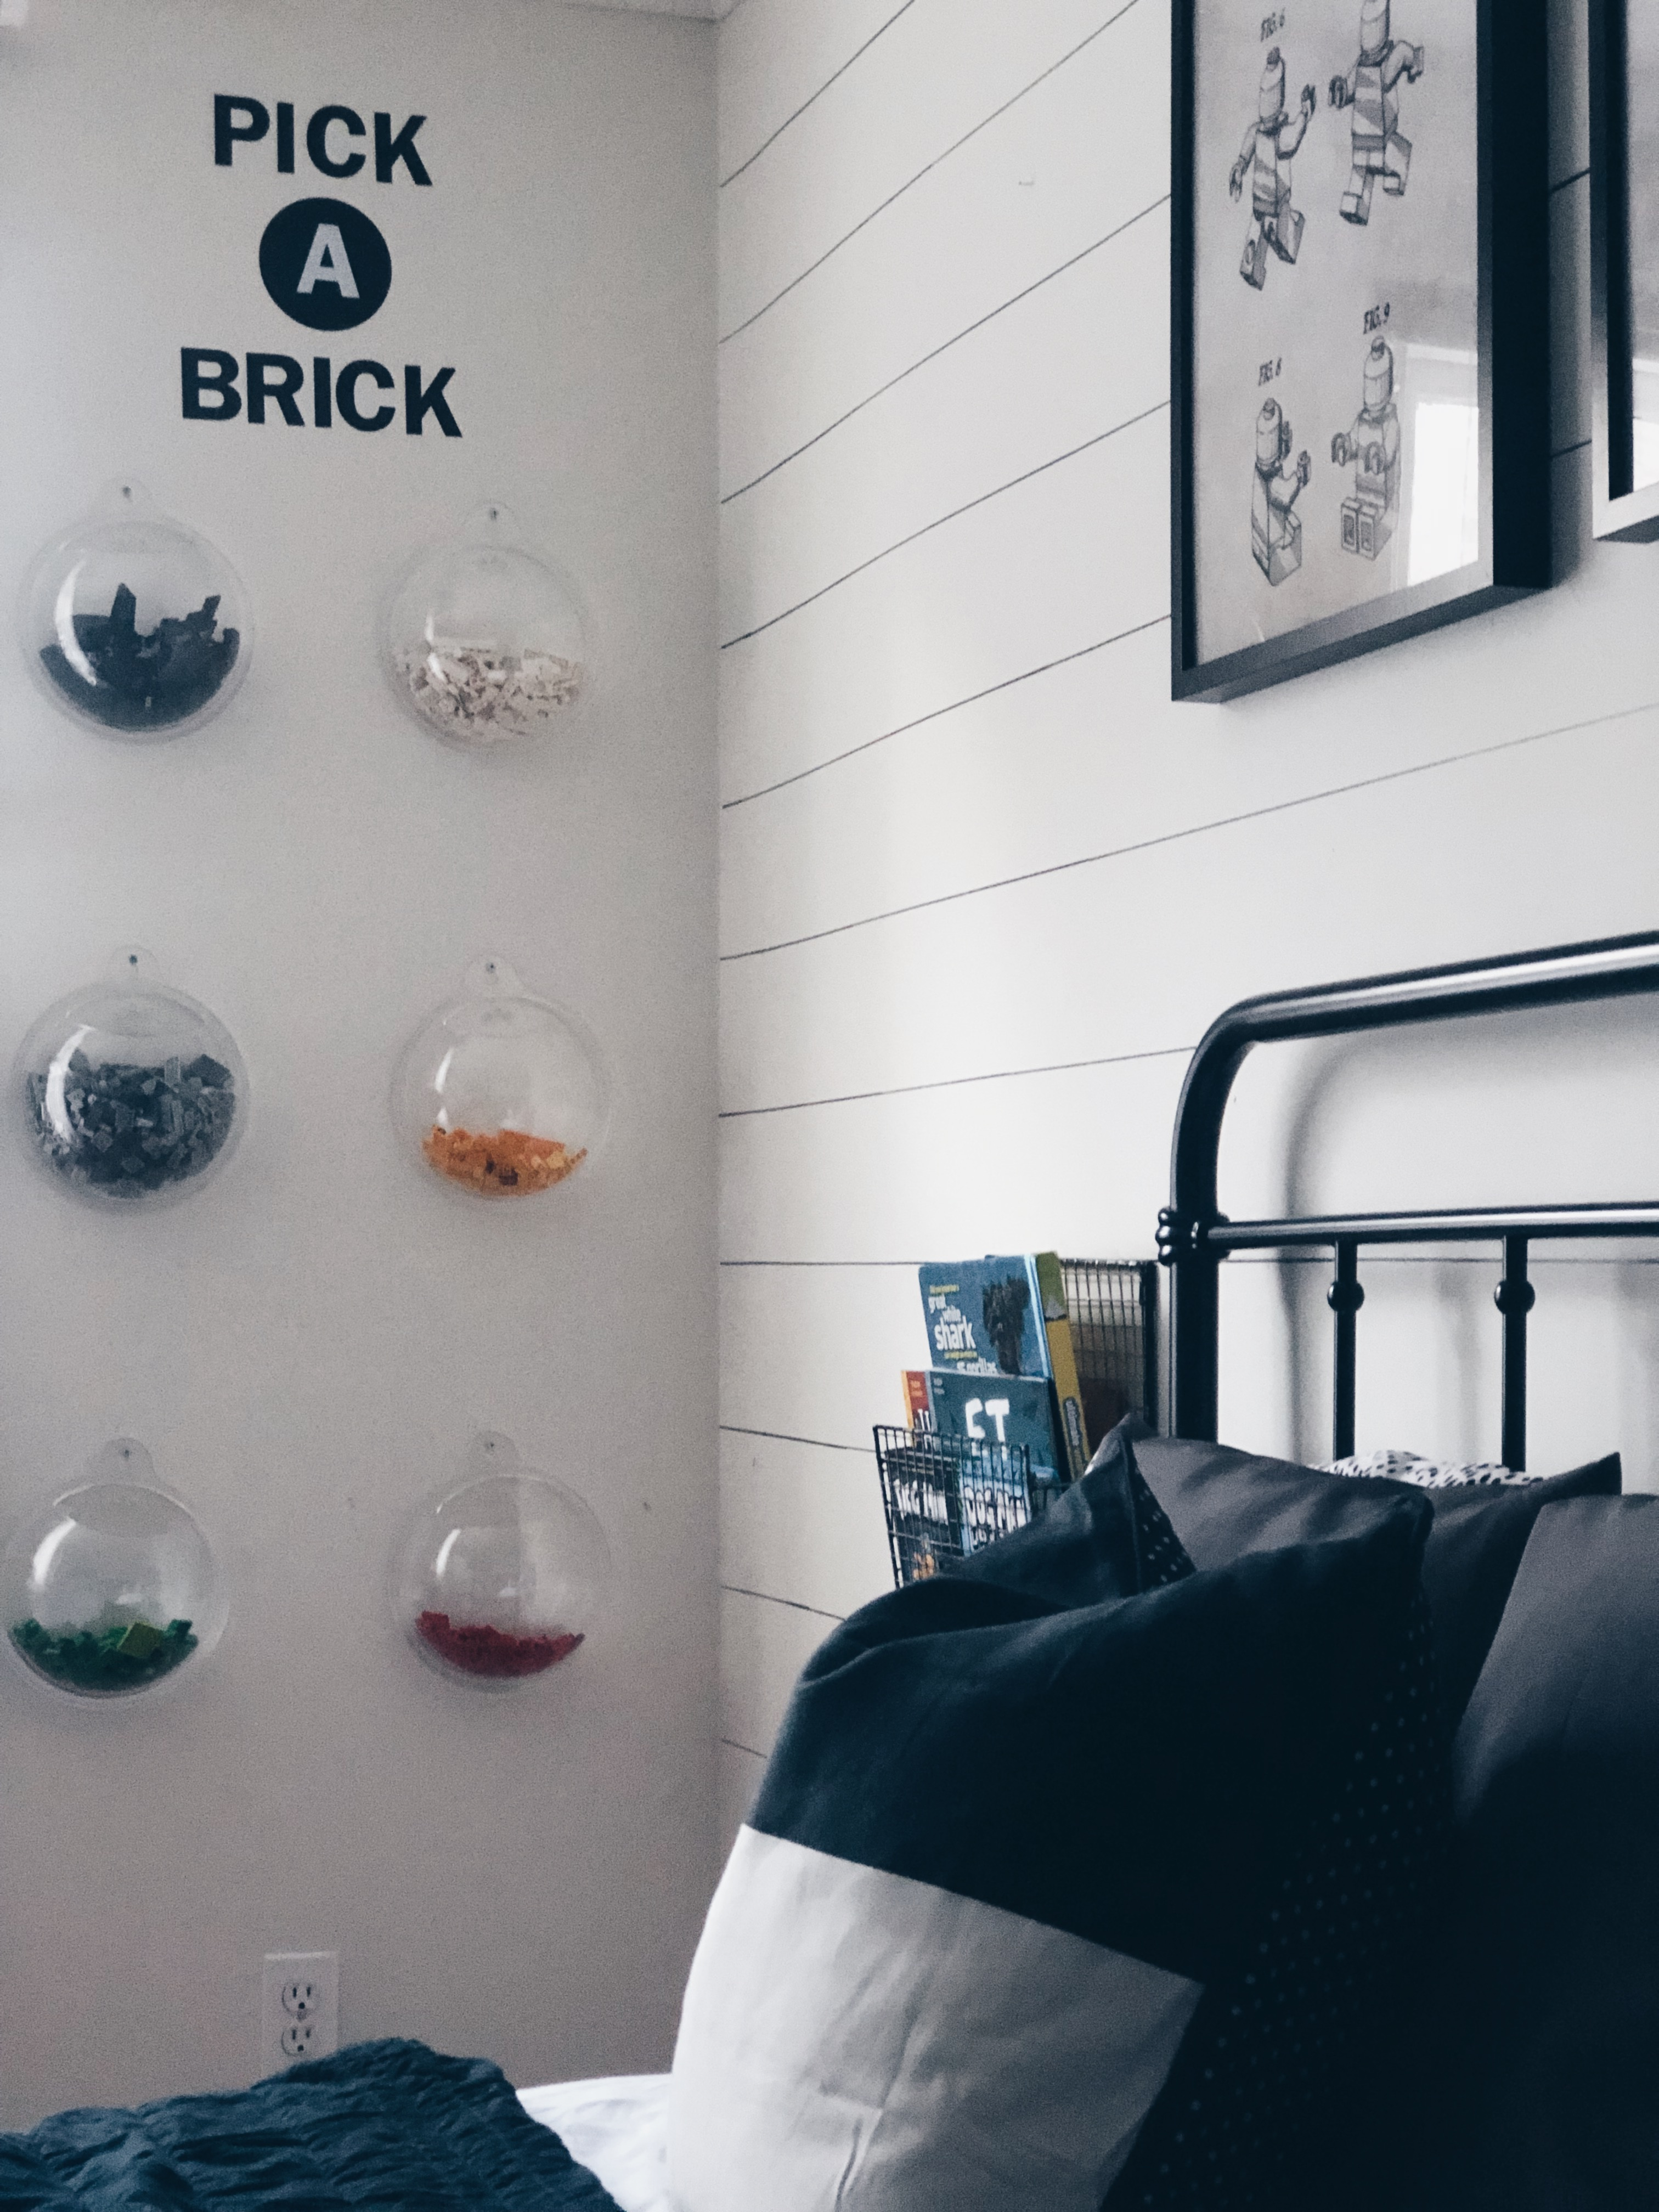 Lego pick a brick wall